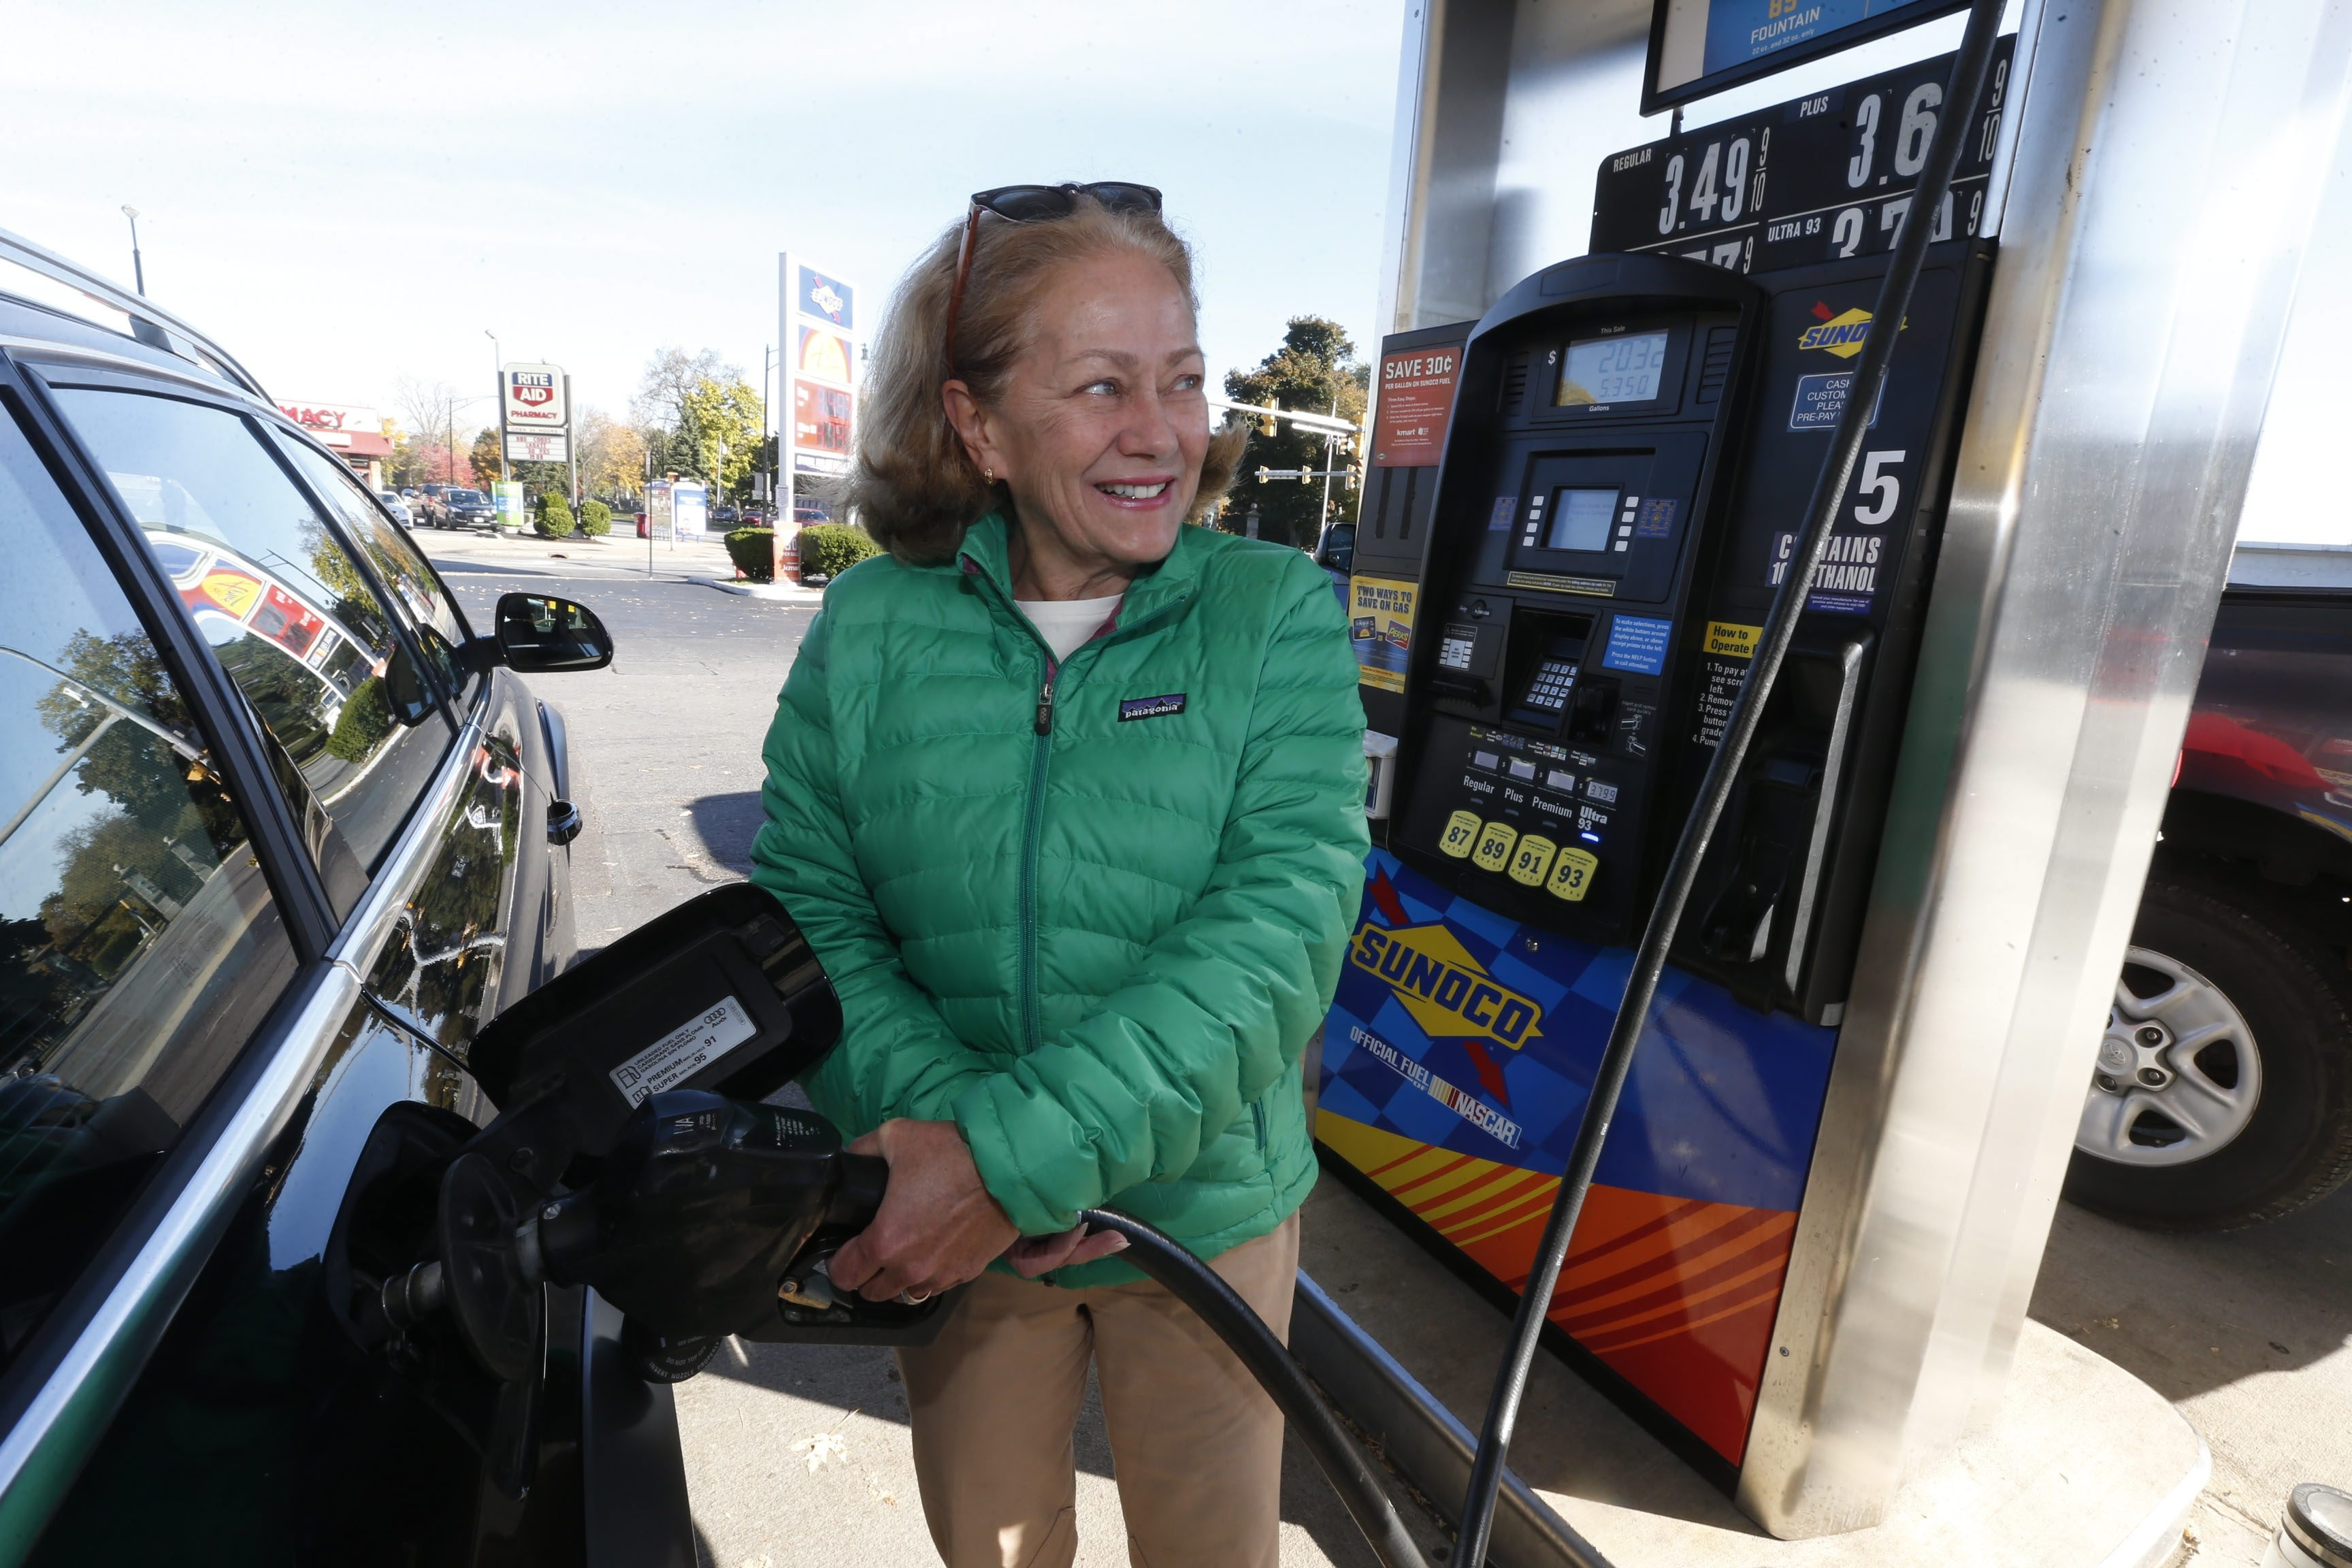 Pamela Righter of Buffalo pumps gas at the Sunoco station on Delaware Avenue near Gates Circle on Monday.